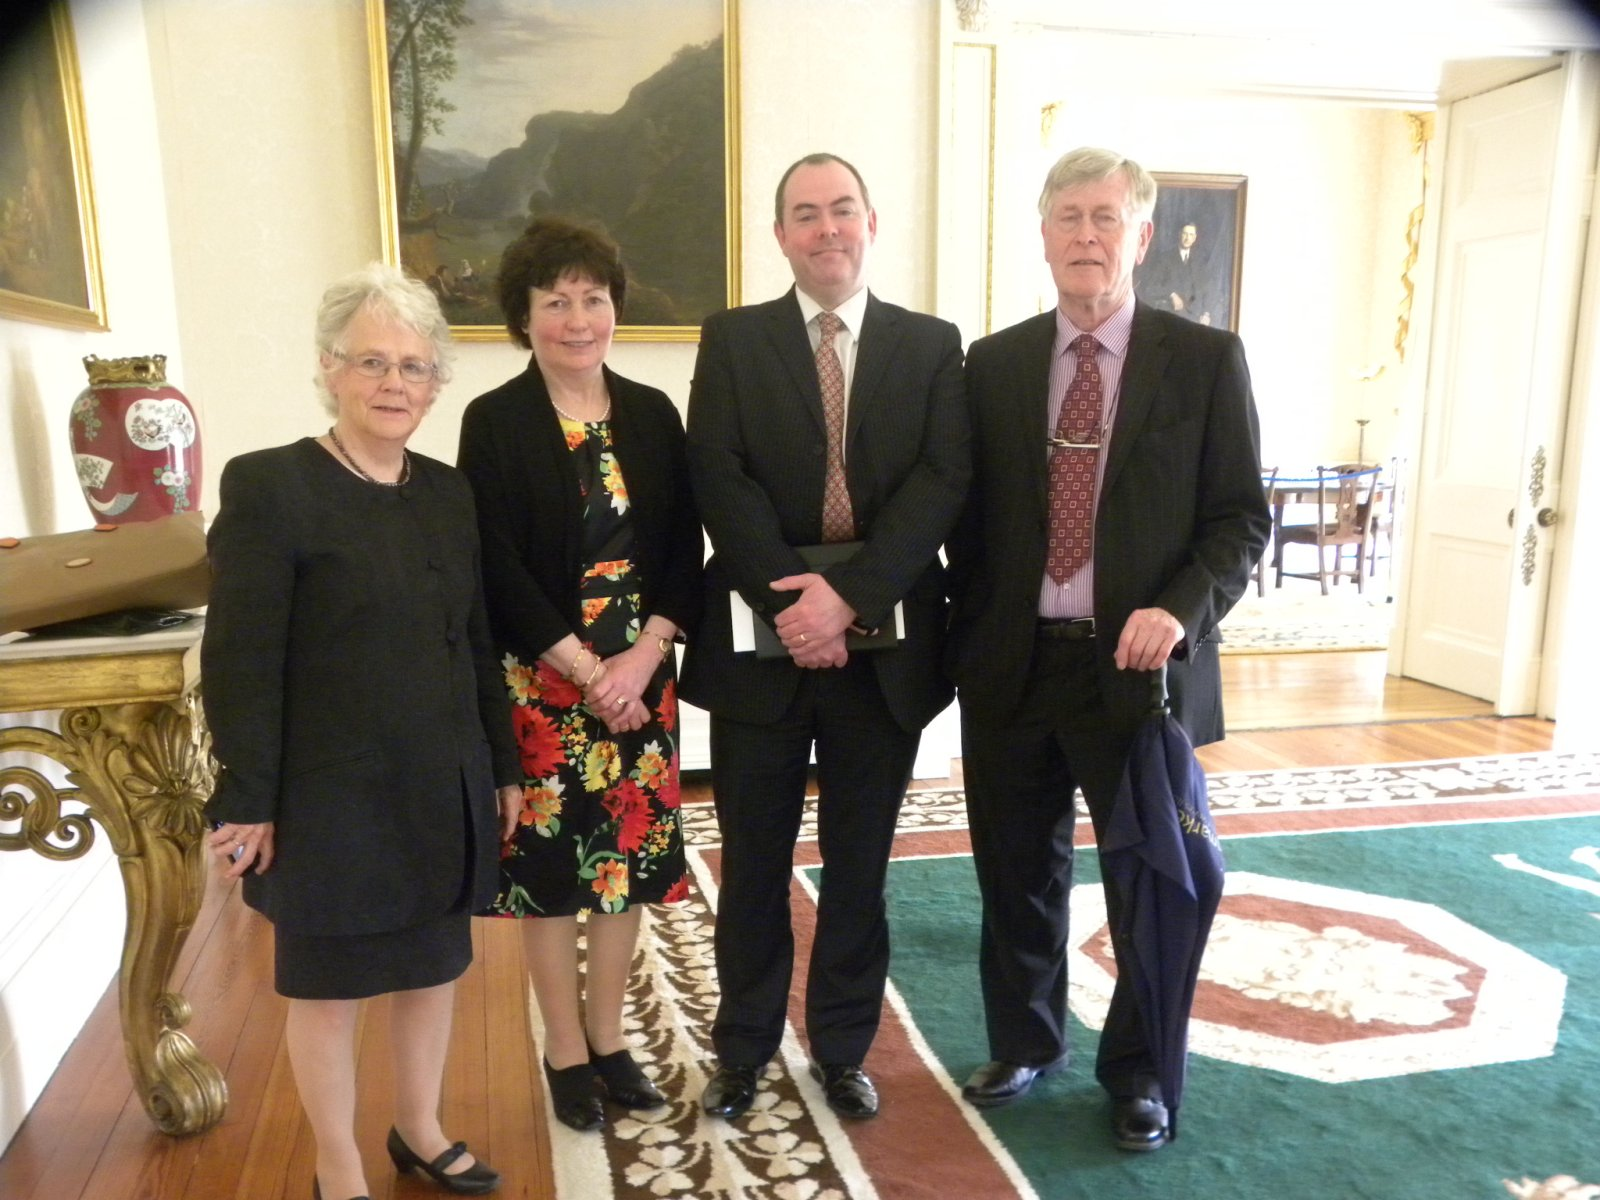 Doreen, Martina, Roddy and Frank in the Drawing Room